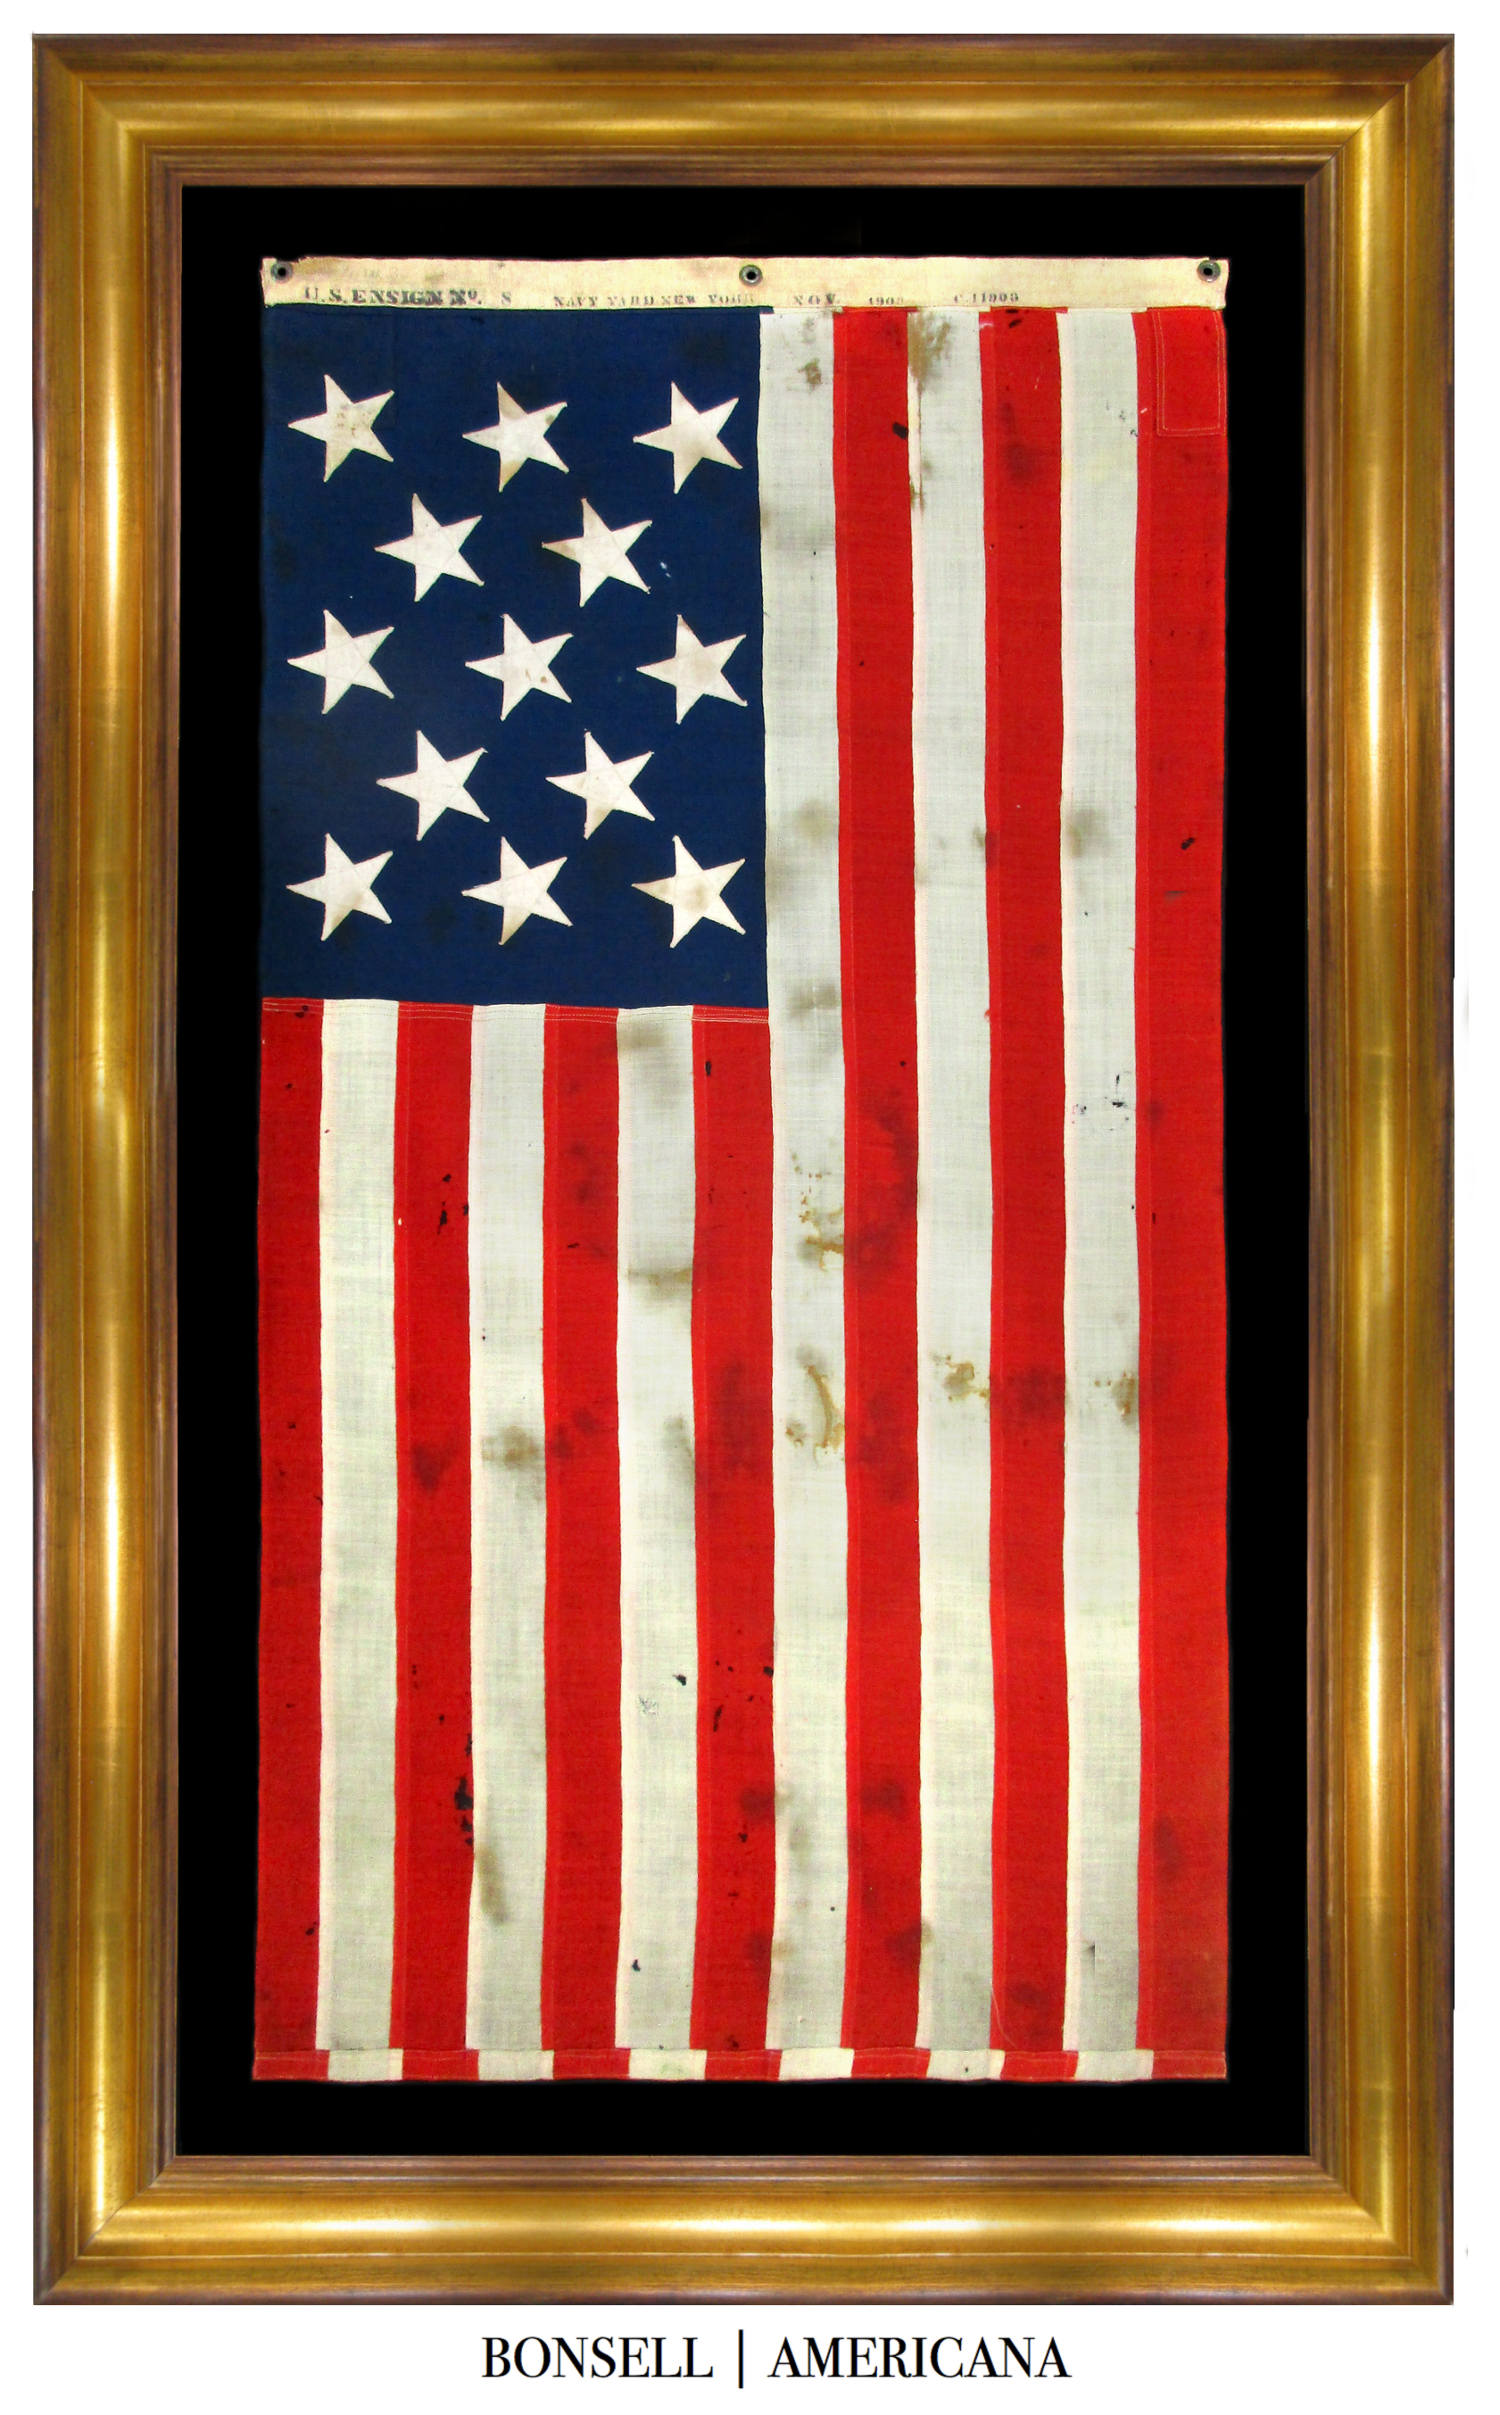 13 Star Antique Flag with U.S. Ensign No. 8 Stamp Along the Hoist